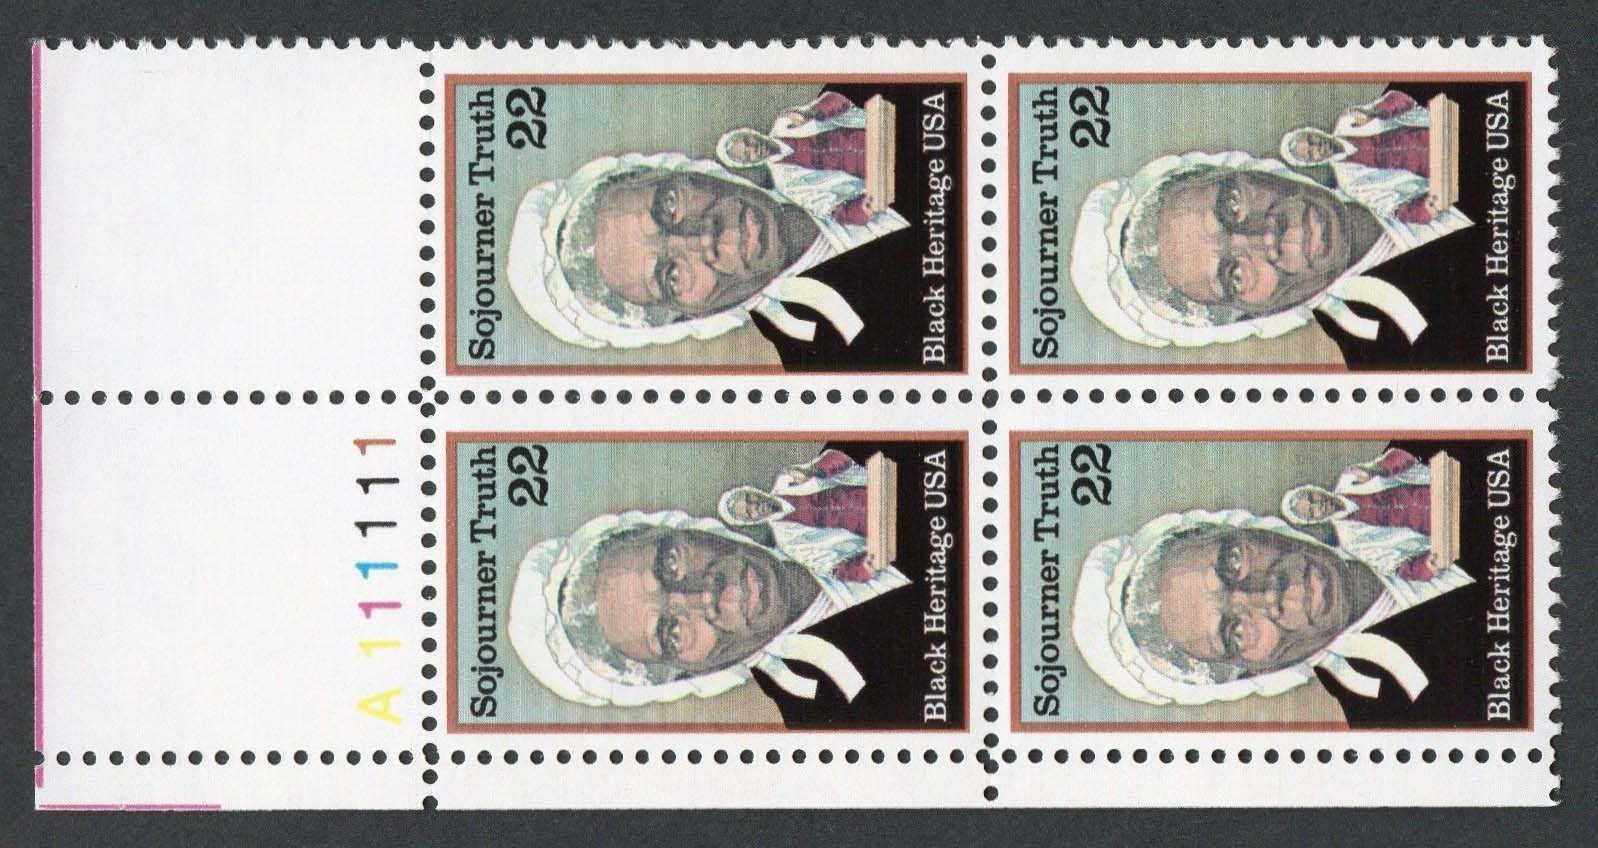 "Scott 2203 Plate Block (22 cents) <p> <a href=""/images/USA-Scott-2203-PB.jpg""><font color=green><b>View the image</a></b></font>"